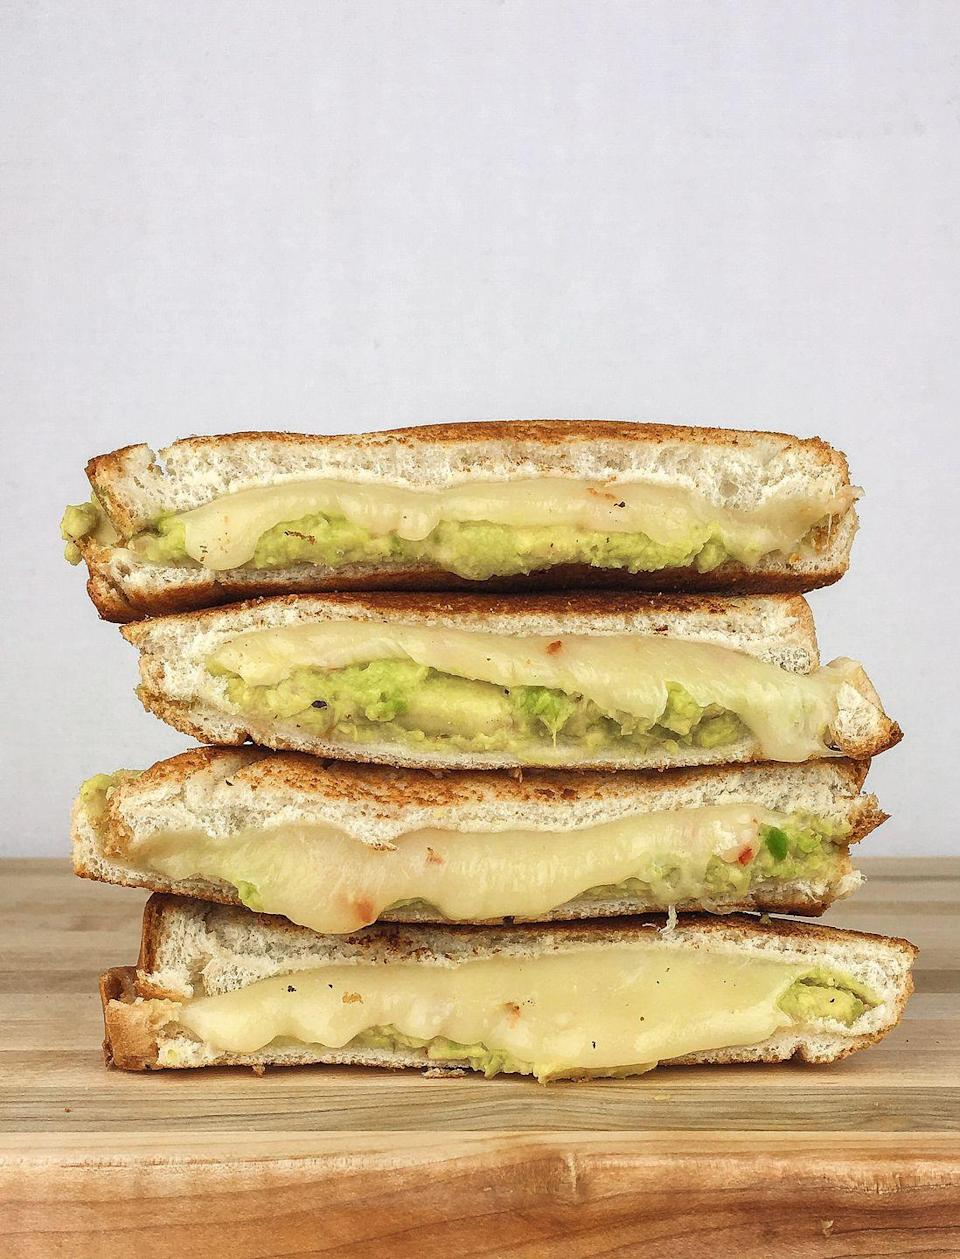 """<p>SO creamy and cheesy!</p><p>Get the recipe from <a href=""""https://www.delish.com/cooking/recipe-ideas/recipes/a46496/avocado-grilled-cheese-recipe/"""" rel=""""nofollow noopener"""" target=""""_blank"""" data-ylk=""""slk:Delish"""" class=""""link rapid-noclick-resp"""">Delish</a>.</p>"""